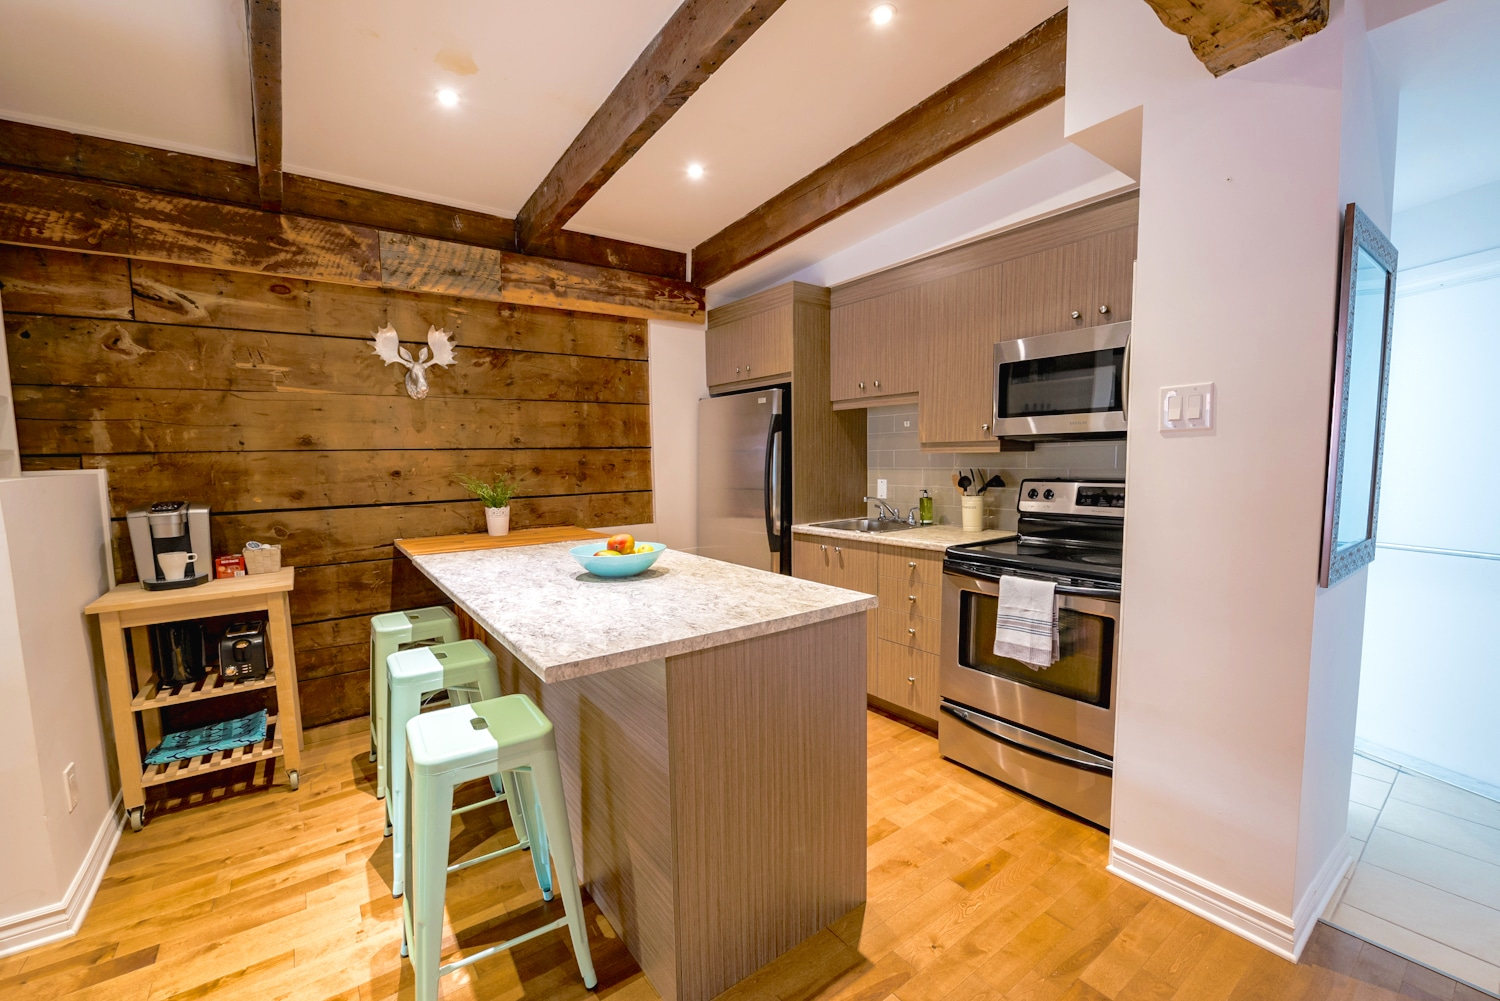 Fully equipped kitchen, open to the living area